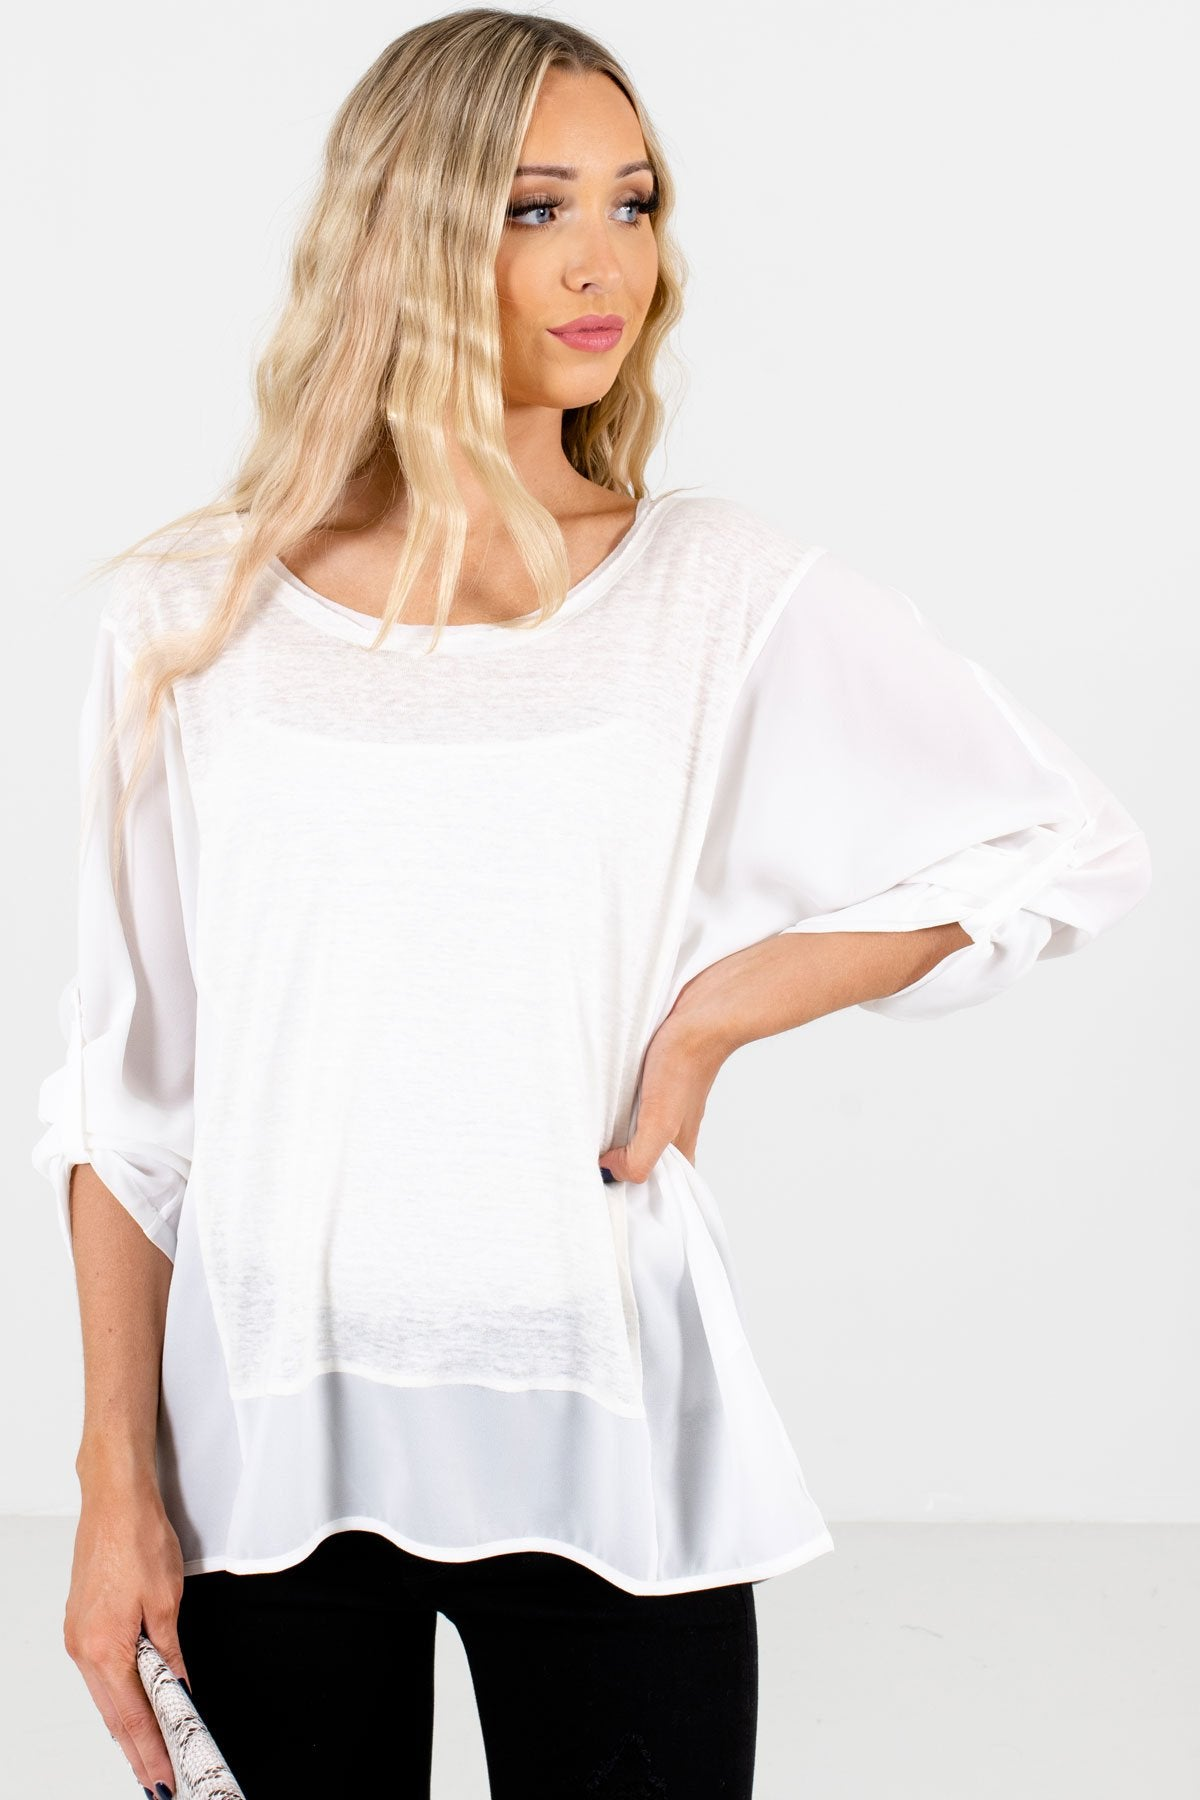 White High-Quality Lightweight Material Boutique Tops for Women